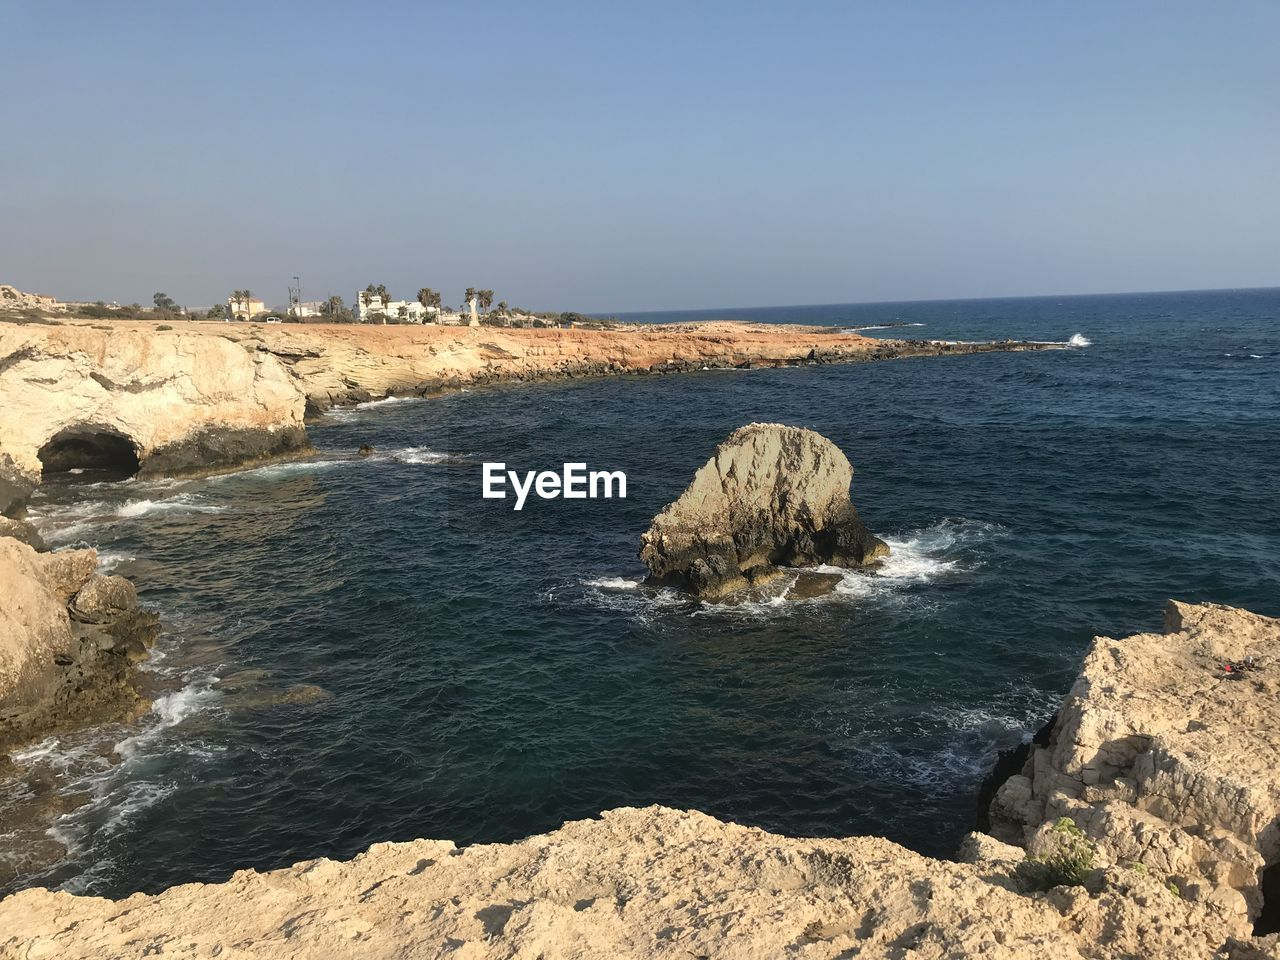 sea, water, rock, beauty in nature, sky, rock - object, scenics - nature, solid, nature, day, land, horizon, rock formation, no people, tranquility, sunlight, tranquil scene, beach, horizon over water, outdoors, stack rock